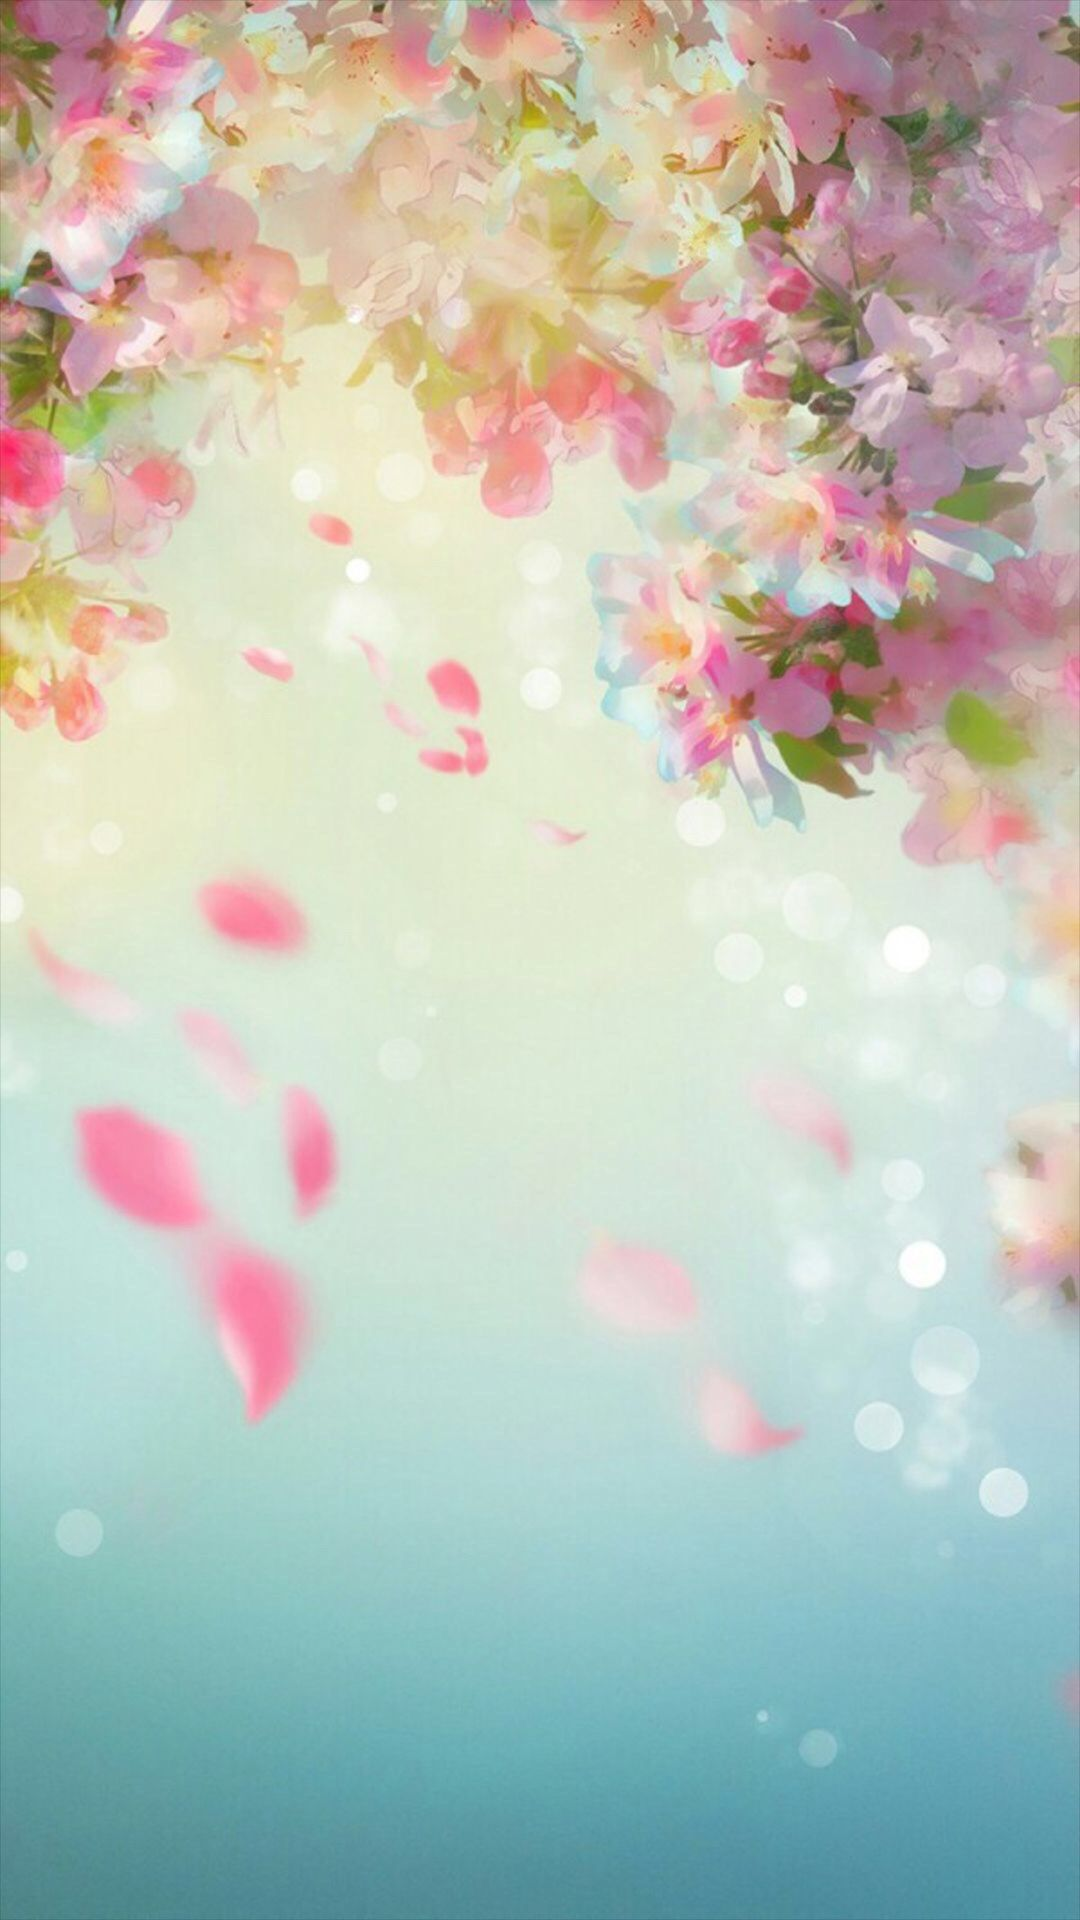 flower painting watercolor wallpaper - photo #32